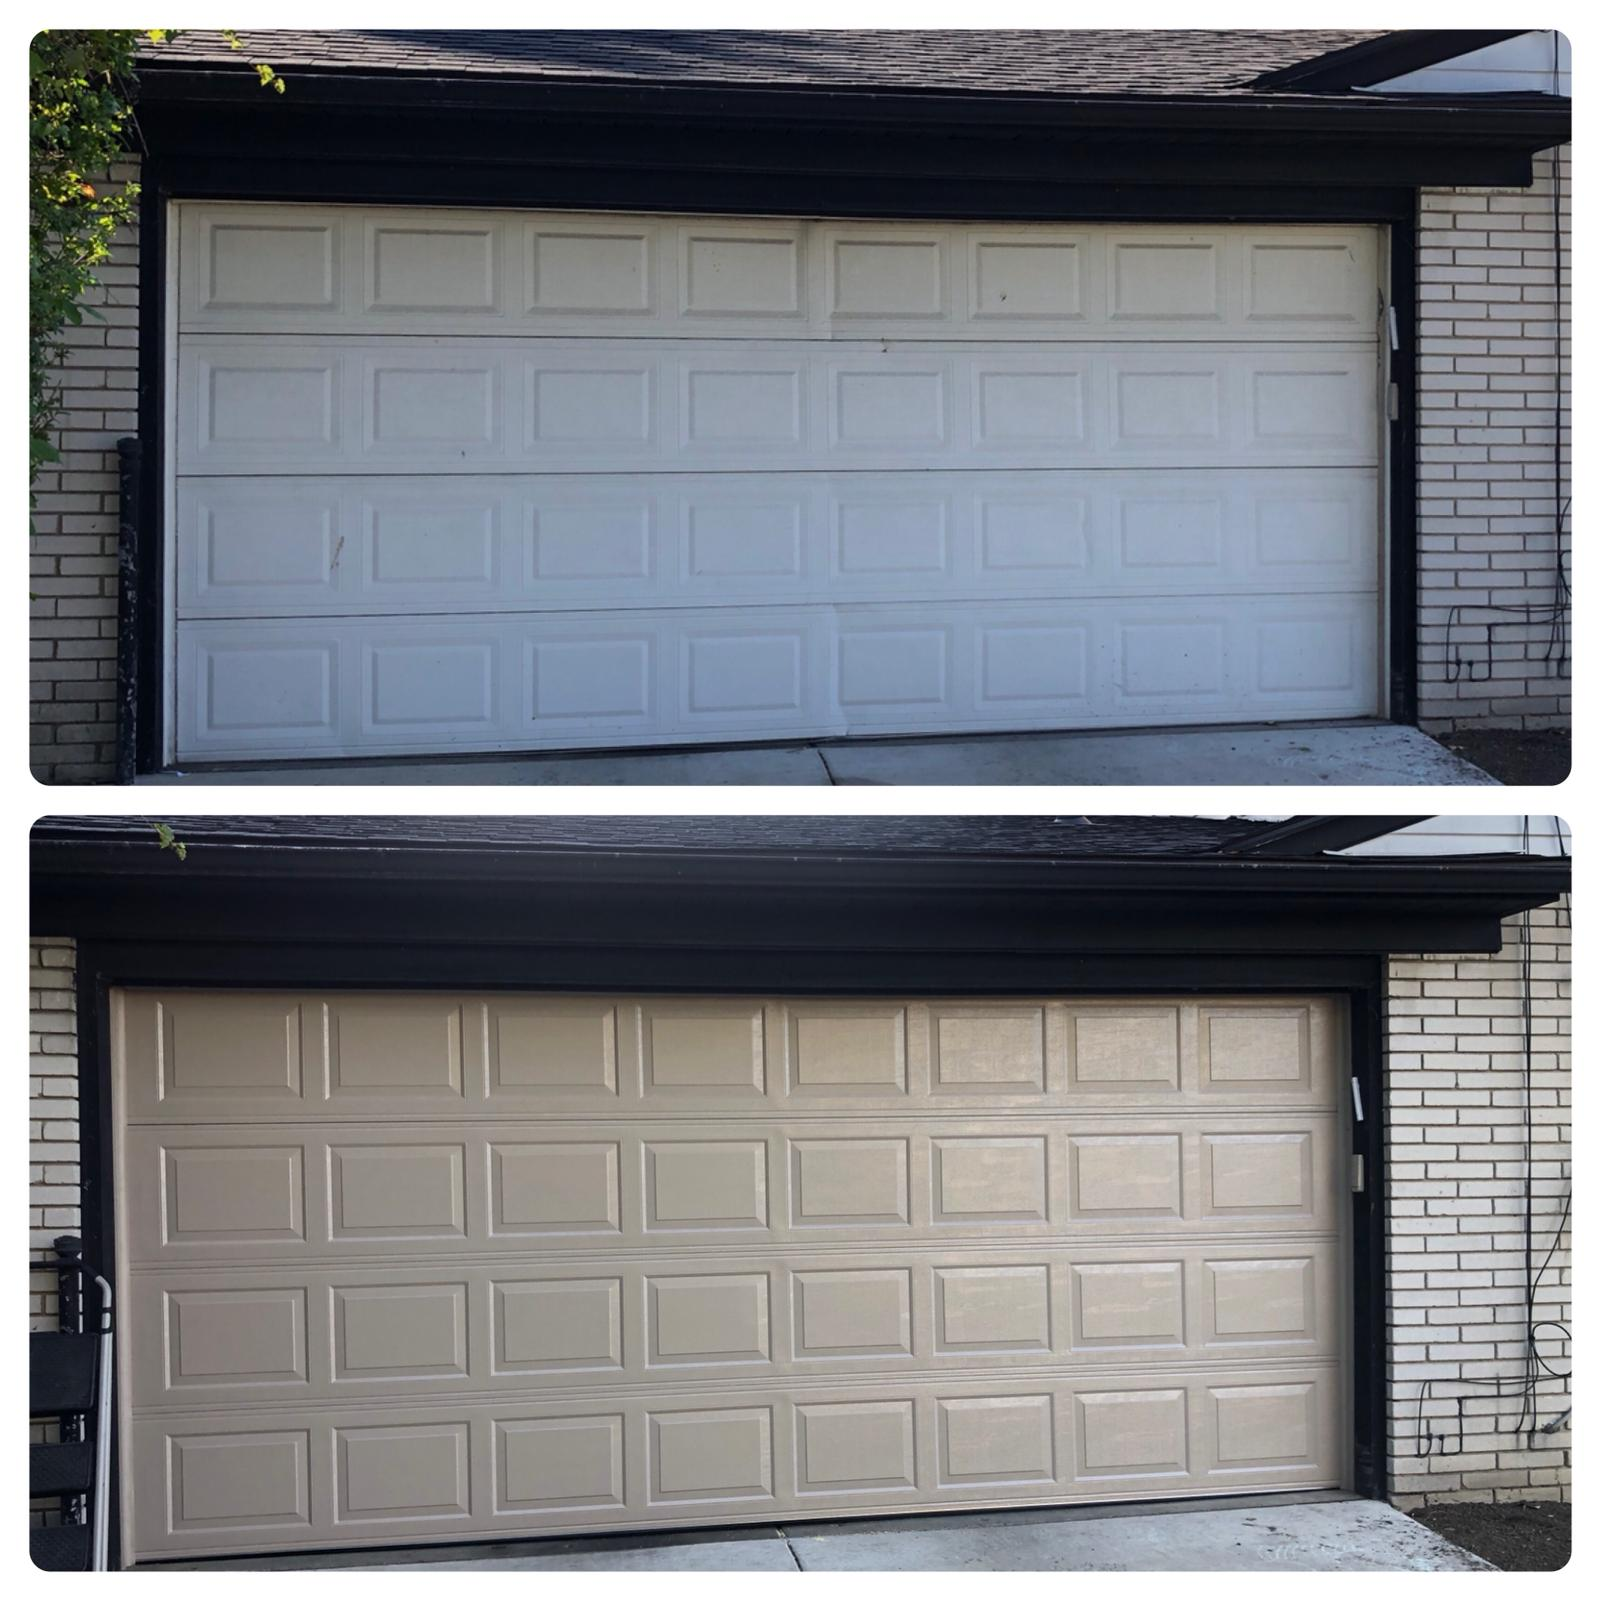 See what a difference a brand new garage door can make